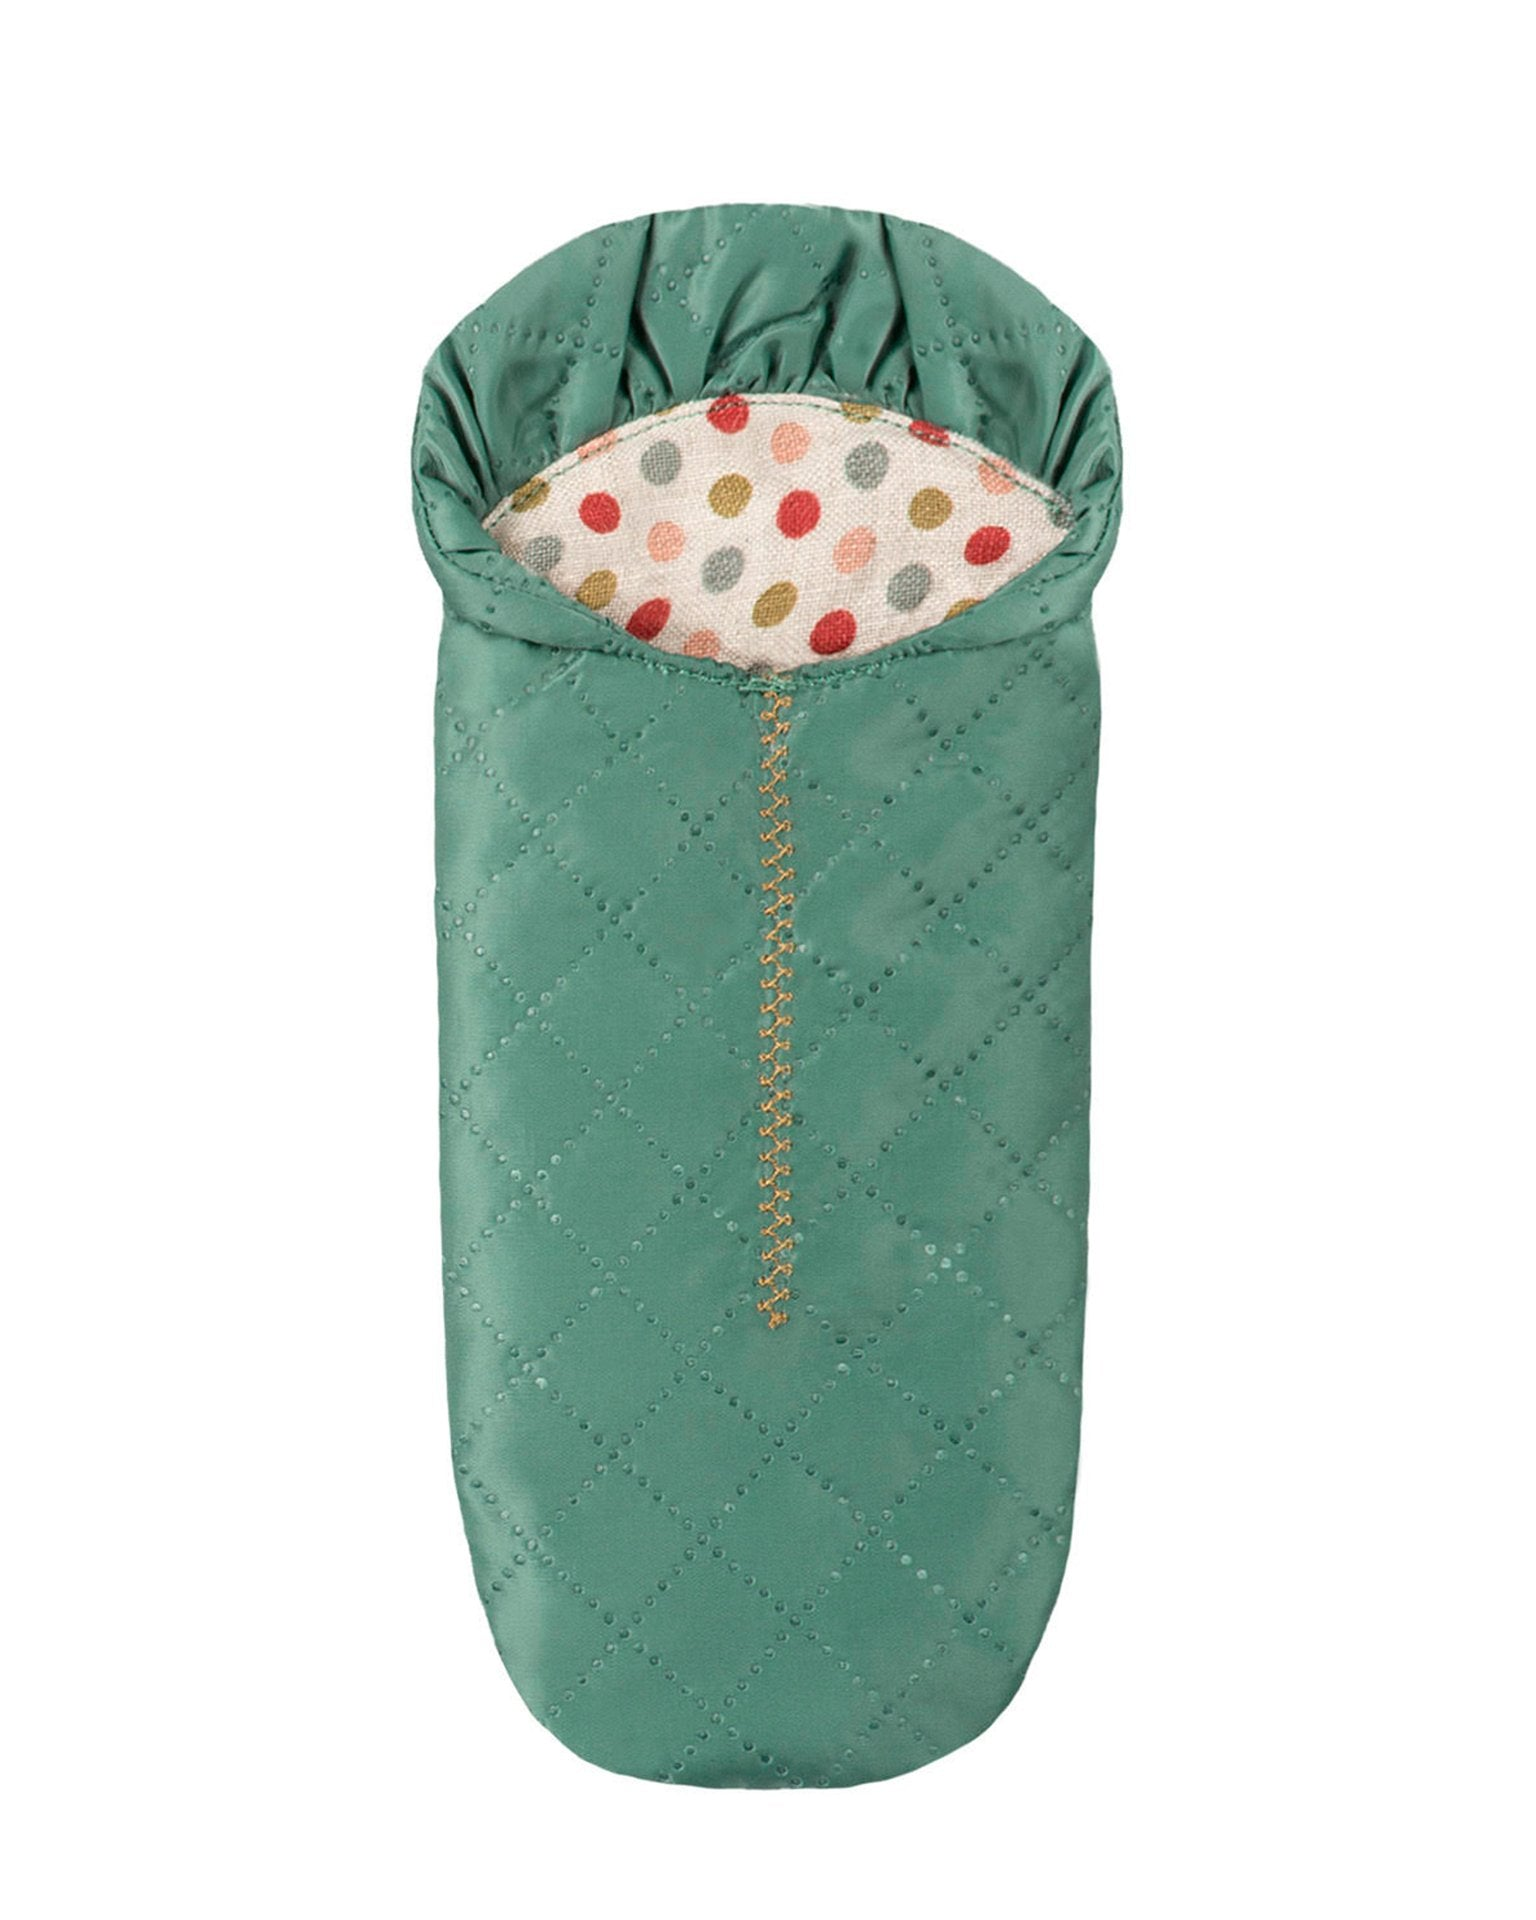 Little maileg play sleeping bag (mouse) in petrol